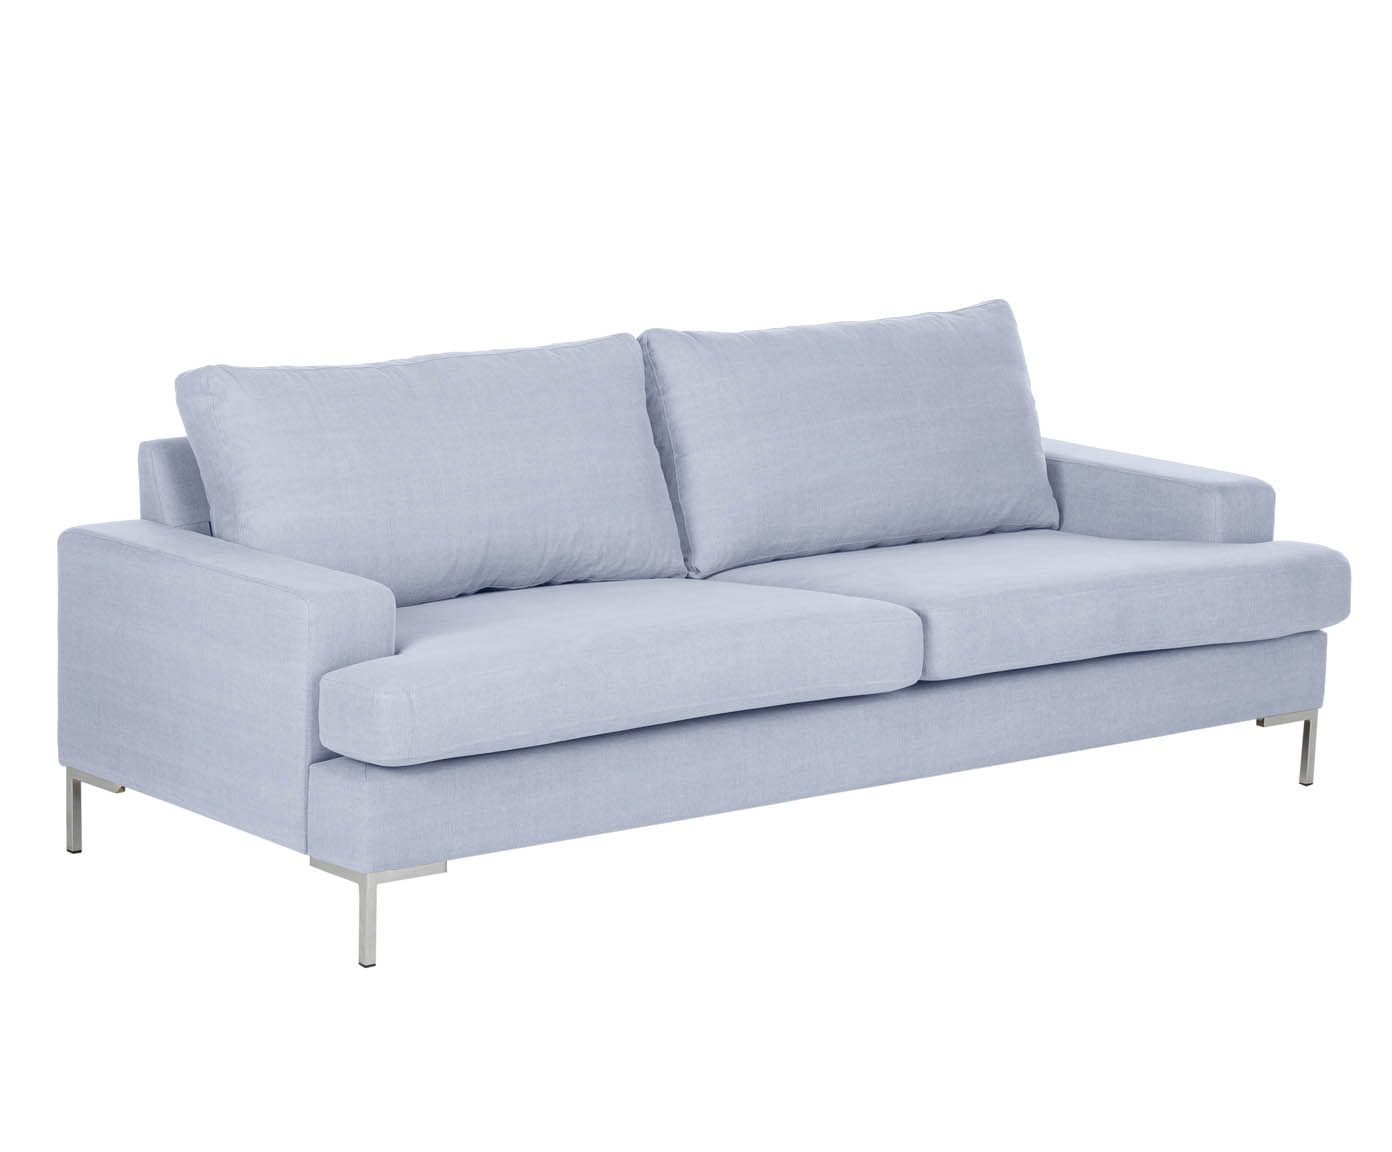 Bunte Couch Journelles Maison Bunte Sofas Westwing Frany Hellblau